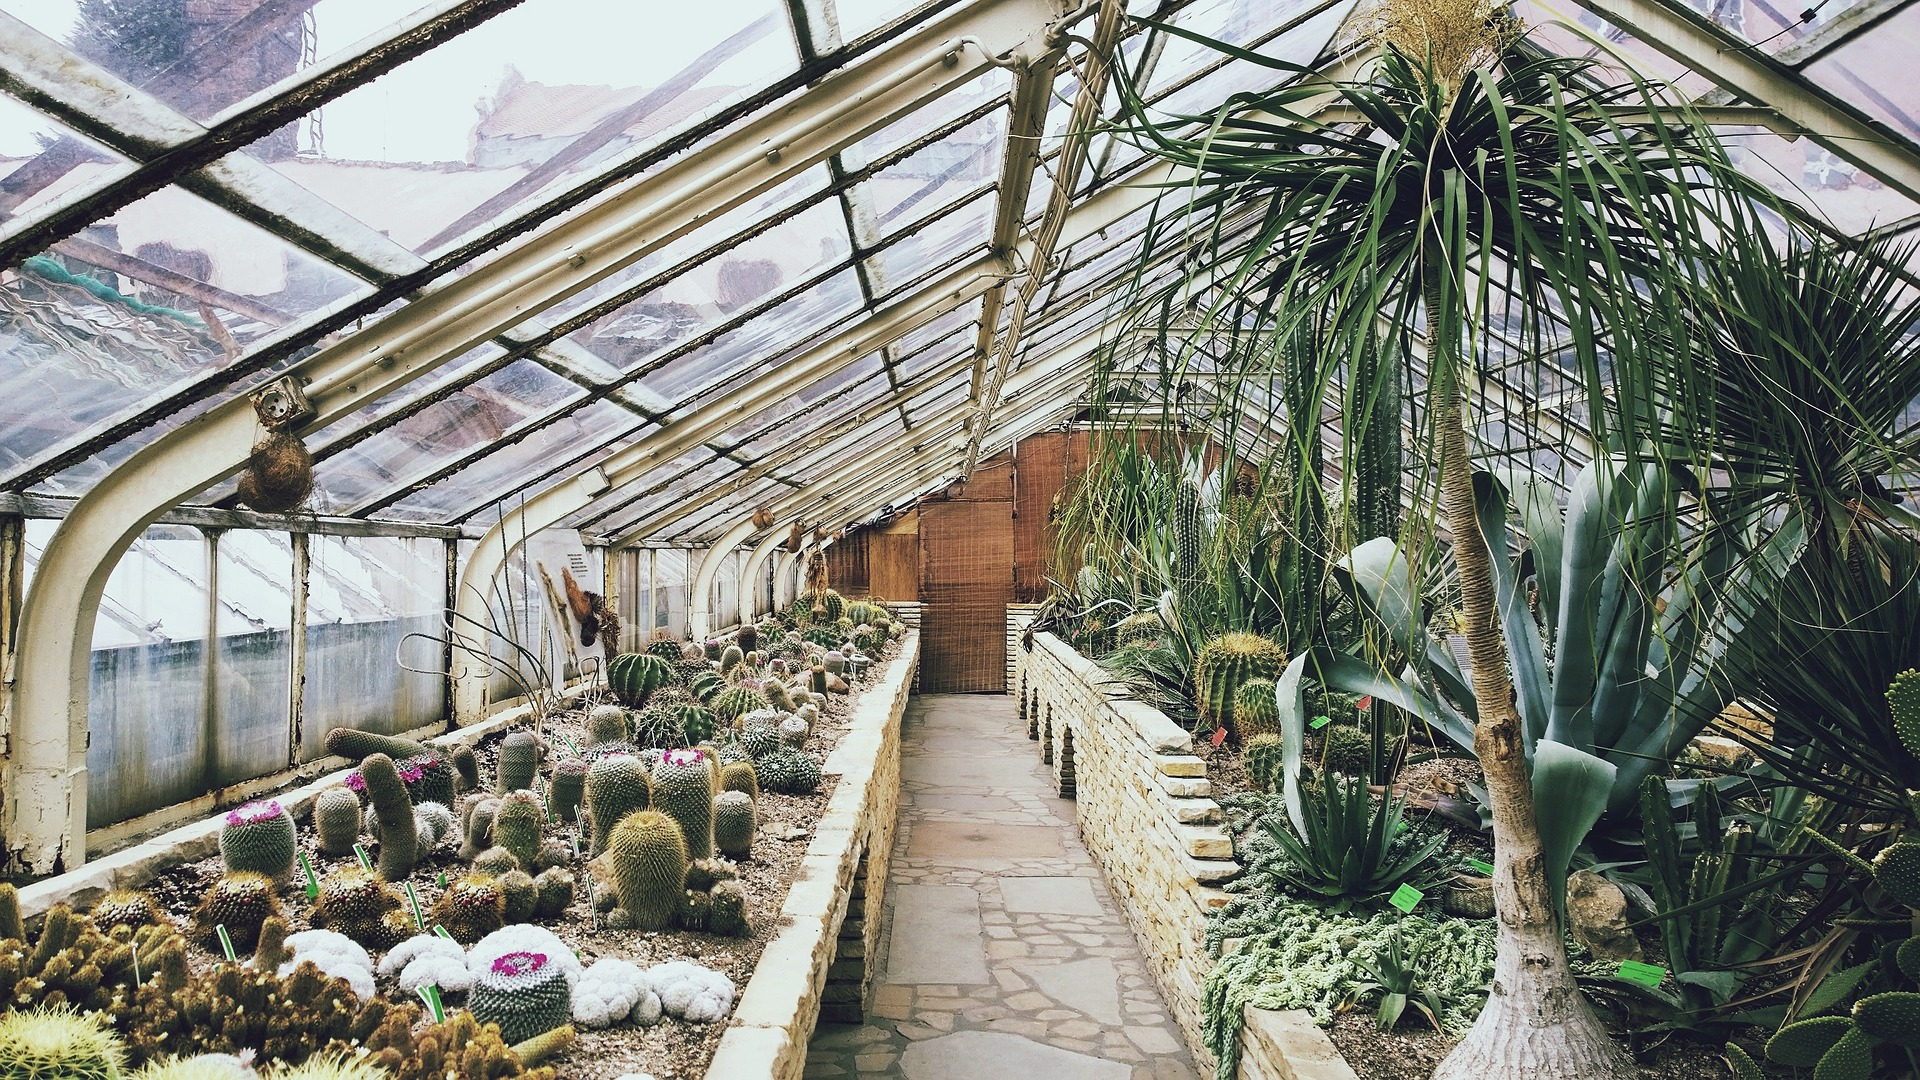 Greenhouse with cacti growing inside